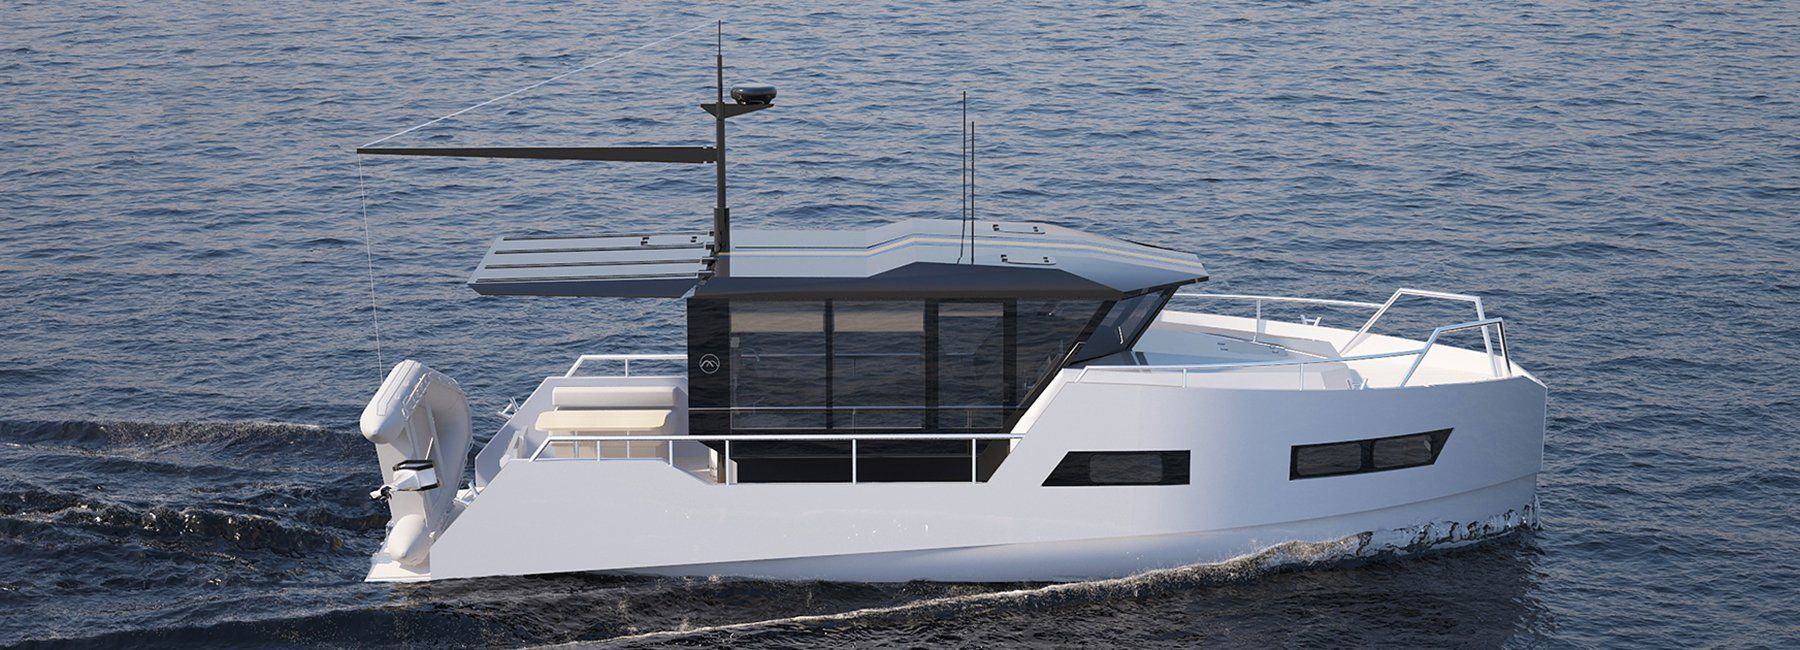 Vik Unveils Electric Boat That Can Be Recharged From Solar Panels Or Wind Power Electric Boat Boat Yacht Design